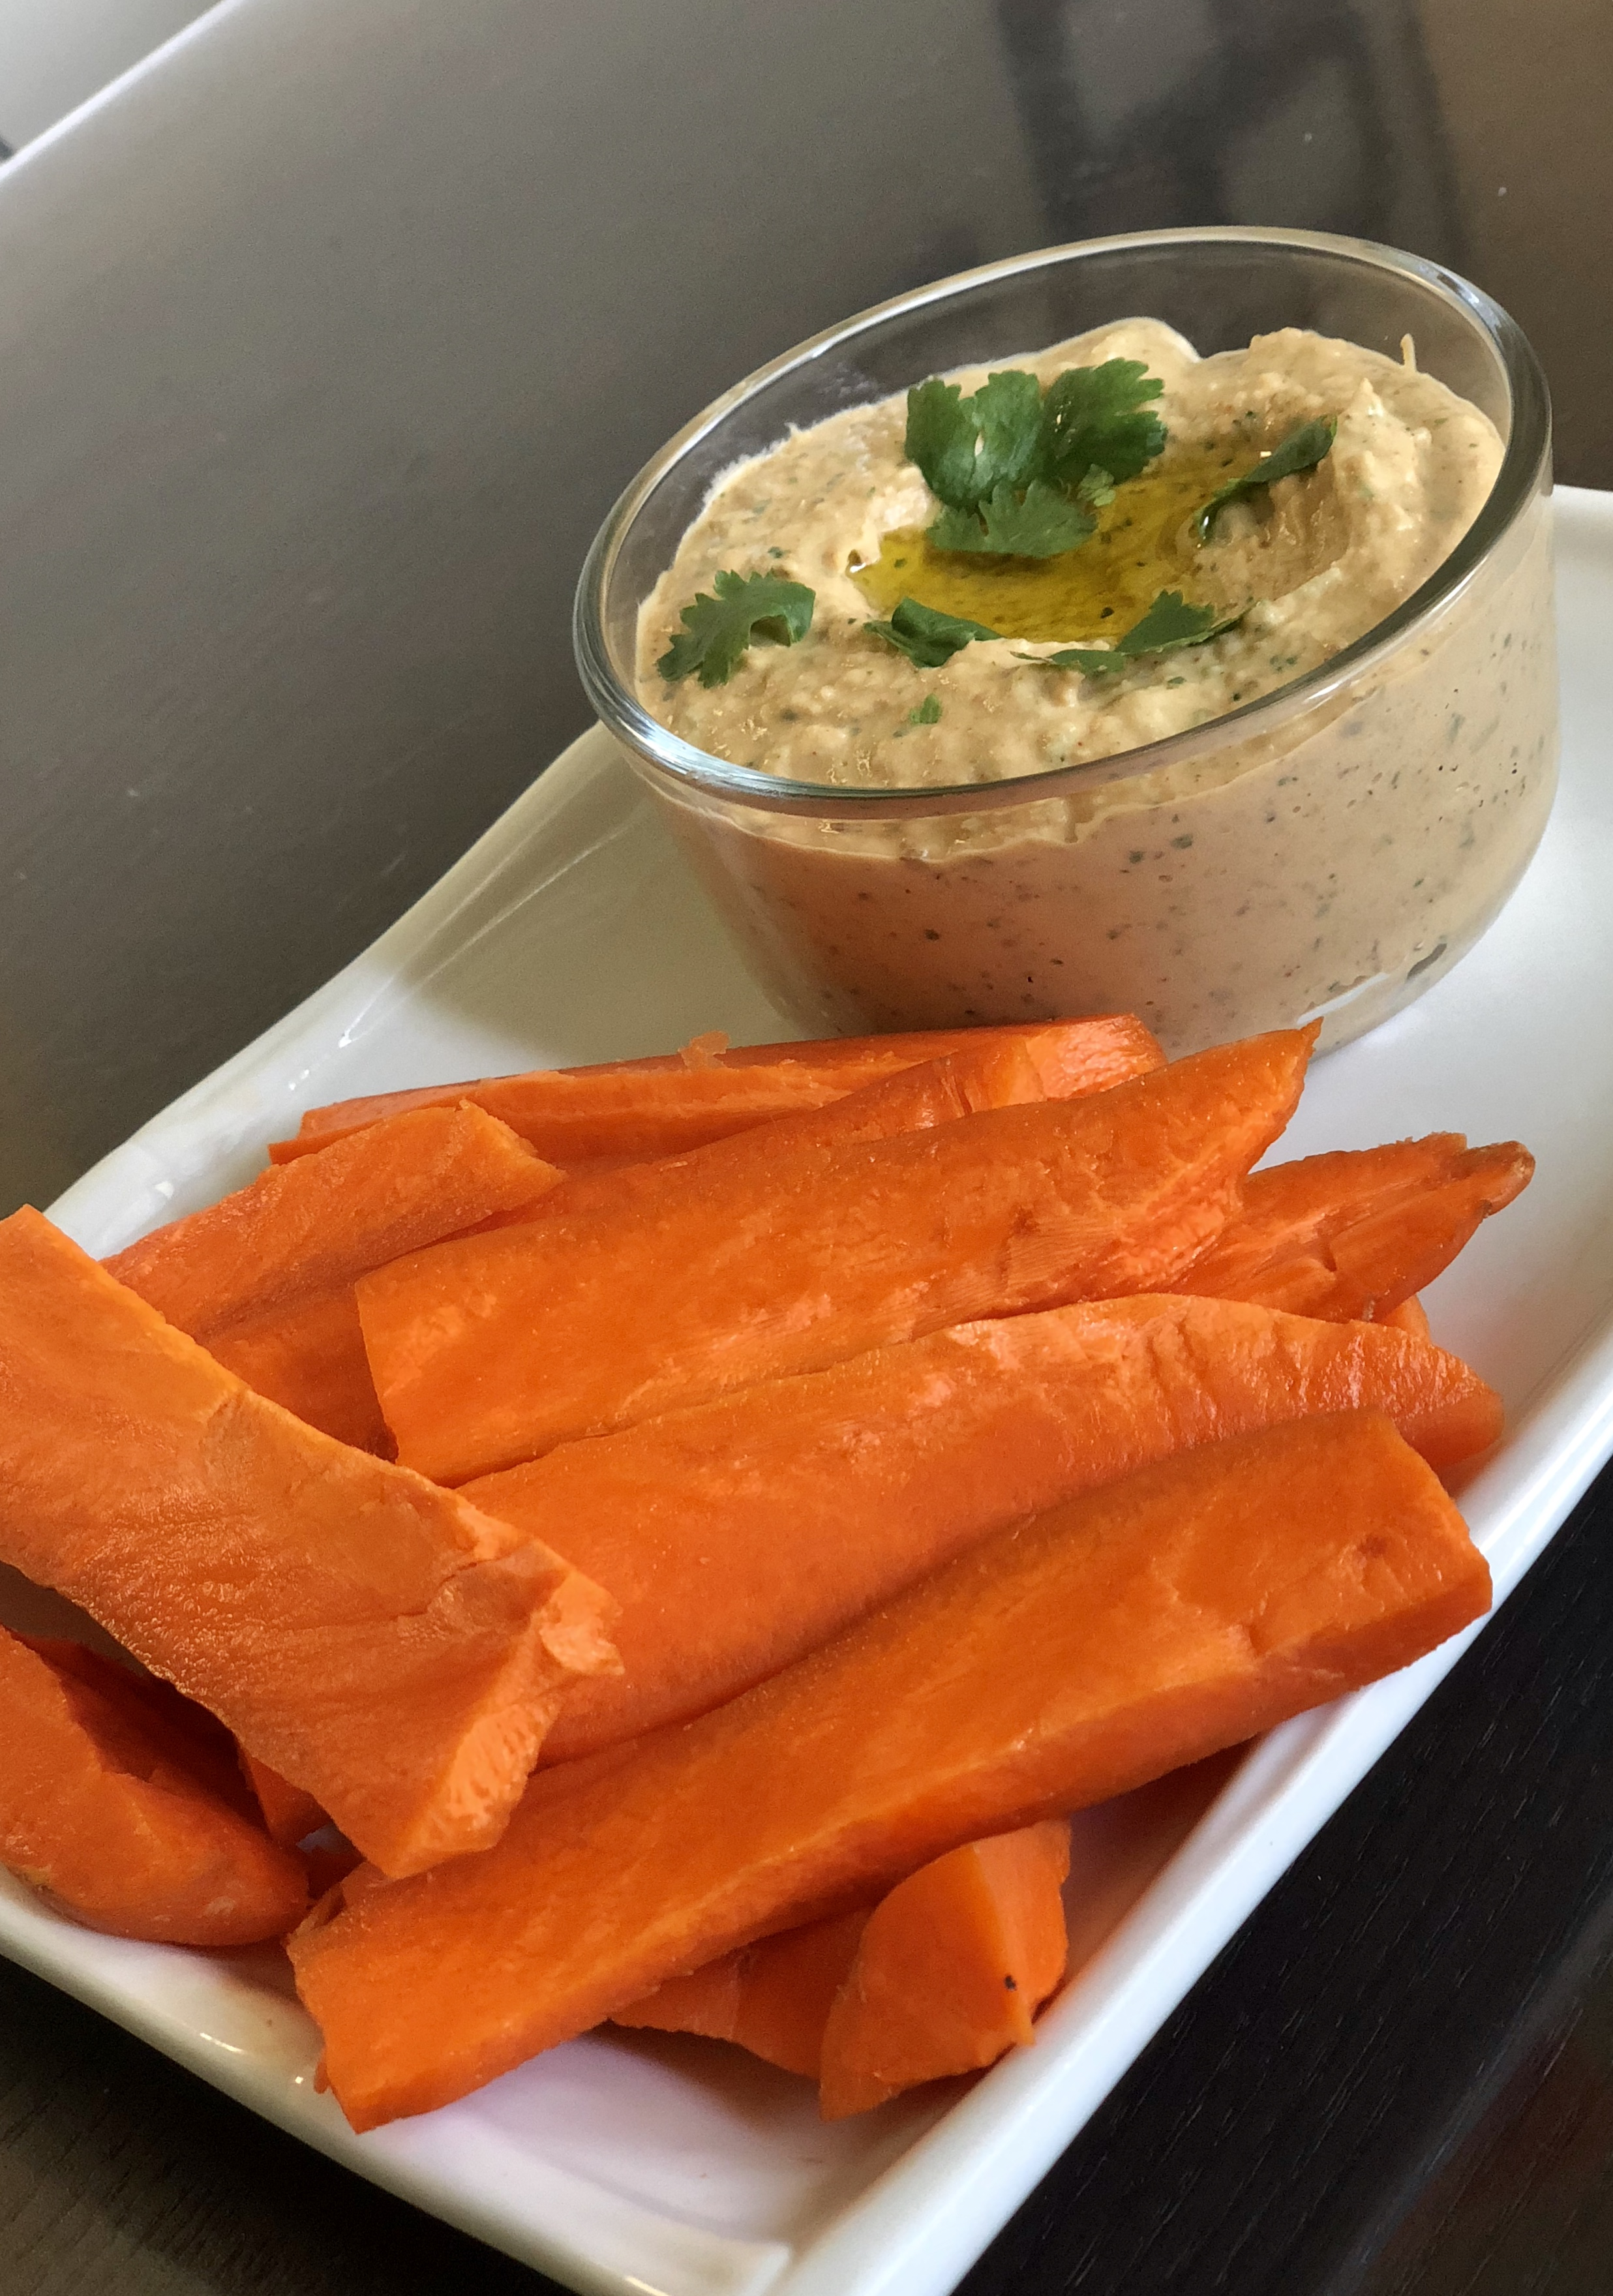 Garlic Hummus - 4 cloves of garlic 4 tablespoons of olive oil 1/2 cup of chopped cilantro 1 tablespoon of lemon juice2 cans of garbanzo beans half drained1/2 cup of tahini1/2  tablespoon of Mediterranean spice sea salt McCormick gourmet1/2 a tablespoon of paprika1/2 a tablespoon of basil 1/2 a tablespoon of oregano Directions:Put the oil, lemon, cilantro, and the cloves of garlic in and blend till the garlic is minced very small. Add the garbanzo beans, tahini, and the seasoning into the food processor.  Put the hummus in an air tight container and place it in the fridge to set. Consume with in 7 days.